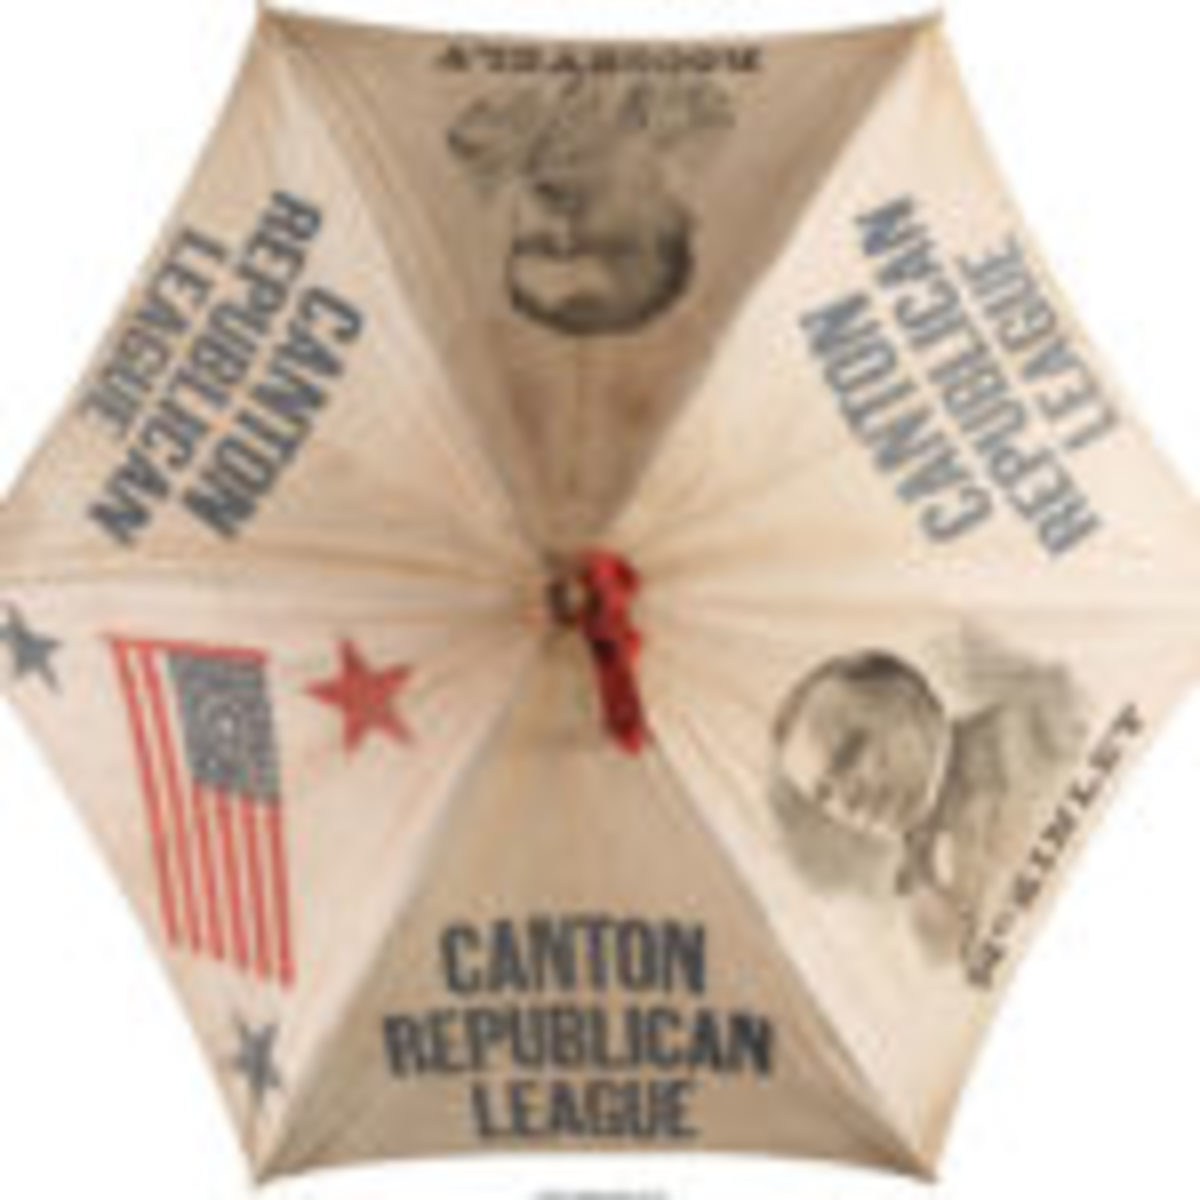 "Umbrella, 1900, cotton parasol or umbrella with portraits of the 1900 Republican nominees, McKinley & Roosevelt, an American flag and the imprint ""Canton Republican League"" on three panels, manufactured in Norwalk, Ohio, McKinley conducted the campaign from his front porch in Canton. $300Courtesy of Heritage Auctions, www.ha.com"